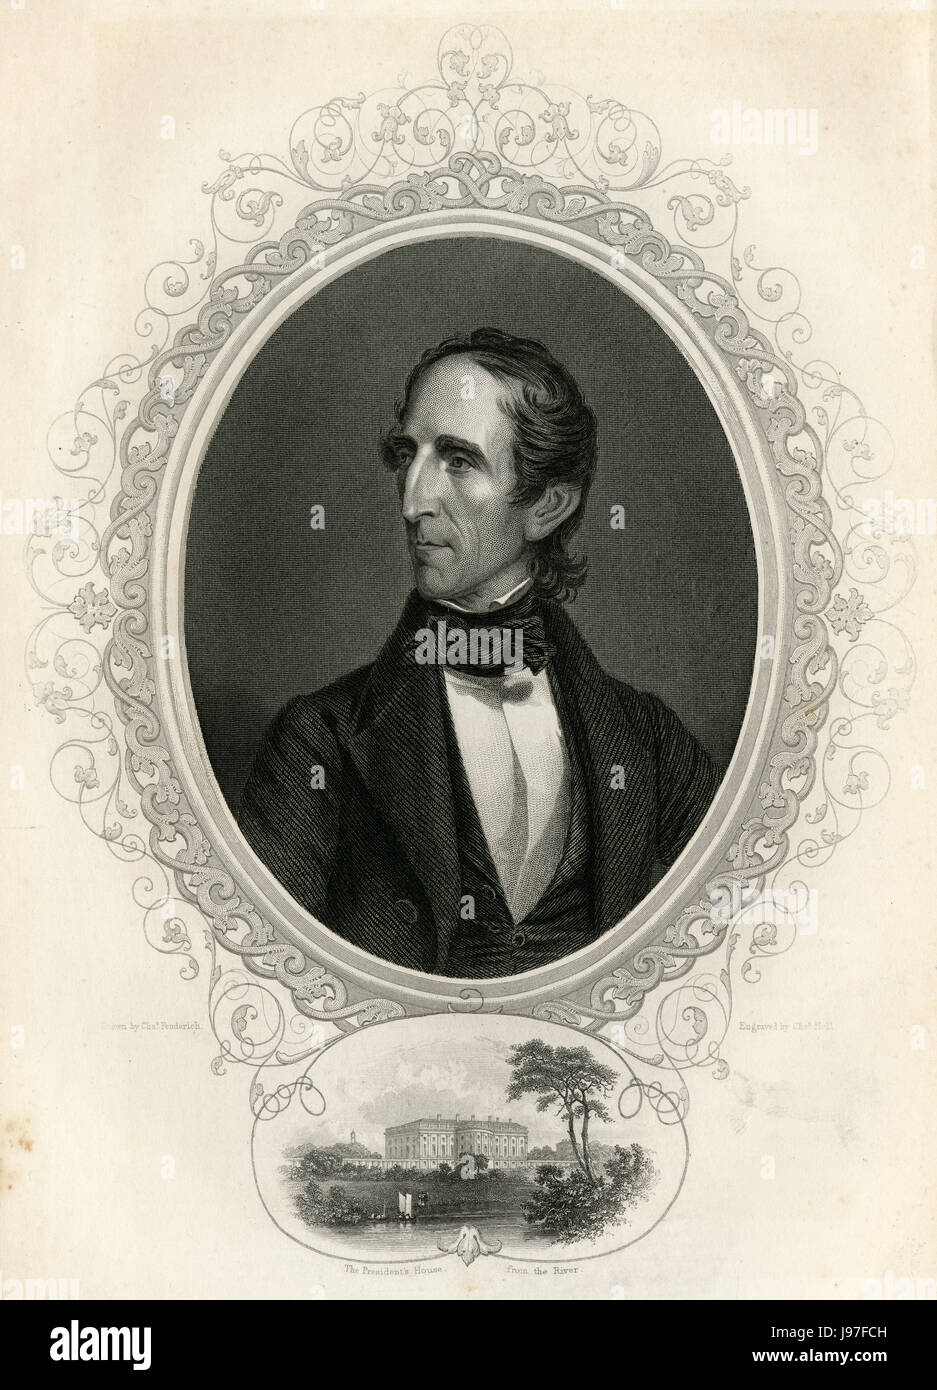 Antique c1860 engraving, John Tyler. John Tyler (1790-1862) was the tenth President of the United States (1841Ð45). - Stock Image